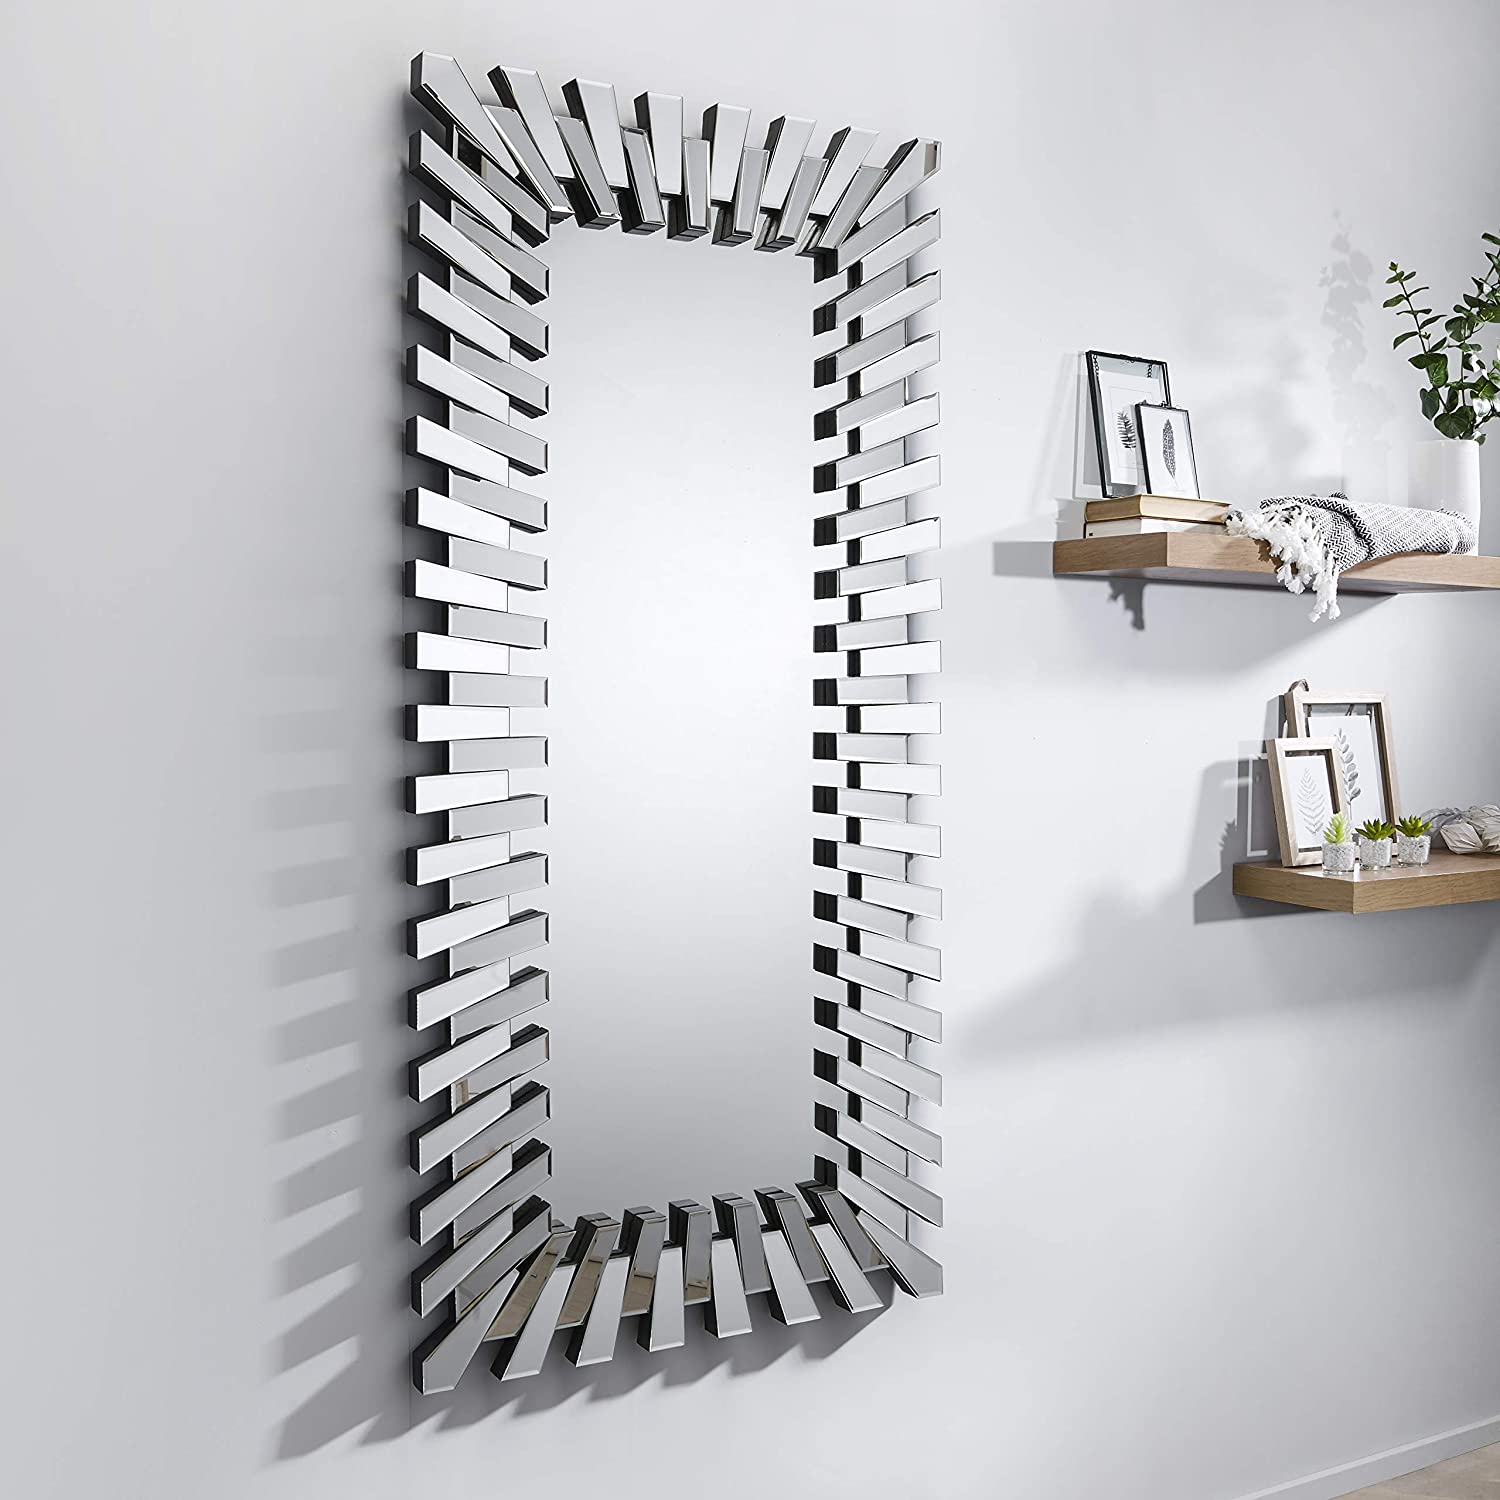 Furniturebox Uk Starburst Large Full Length Silver Stylish 3d Rectangular Modern Living Room Bedroom Wall Mirror Amazon Co Uk Kitchen Home